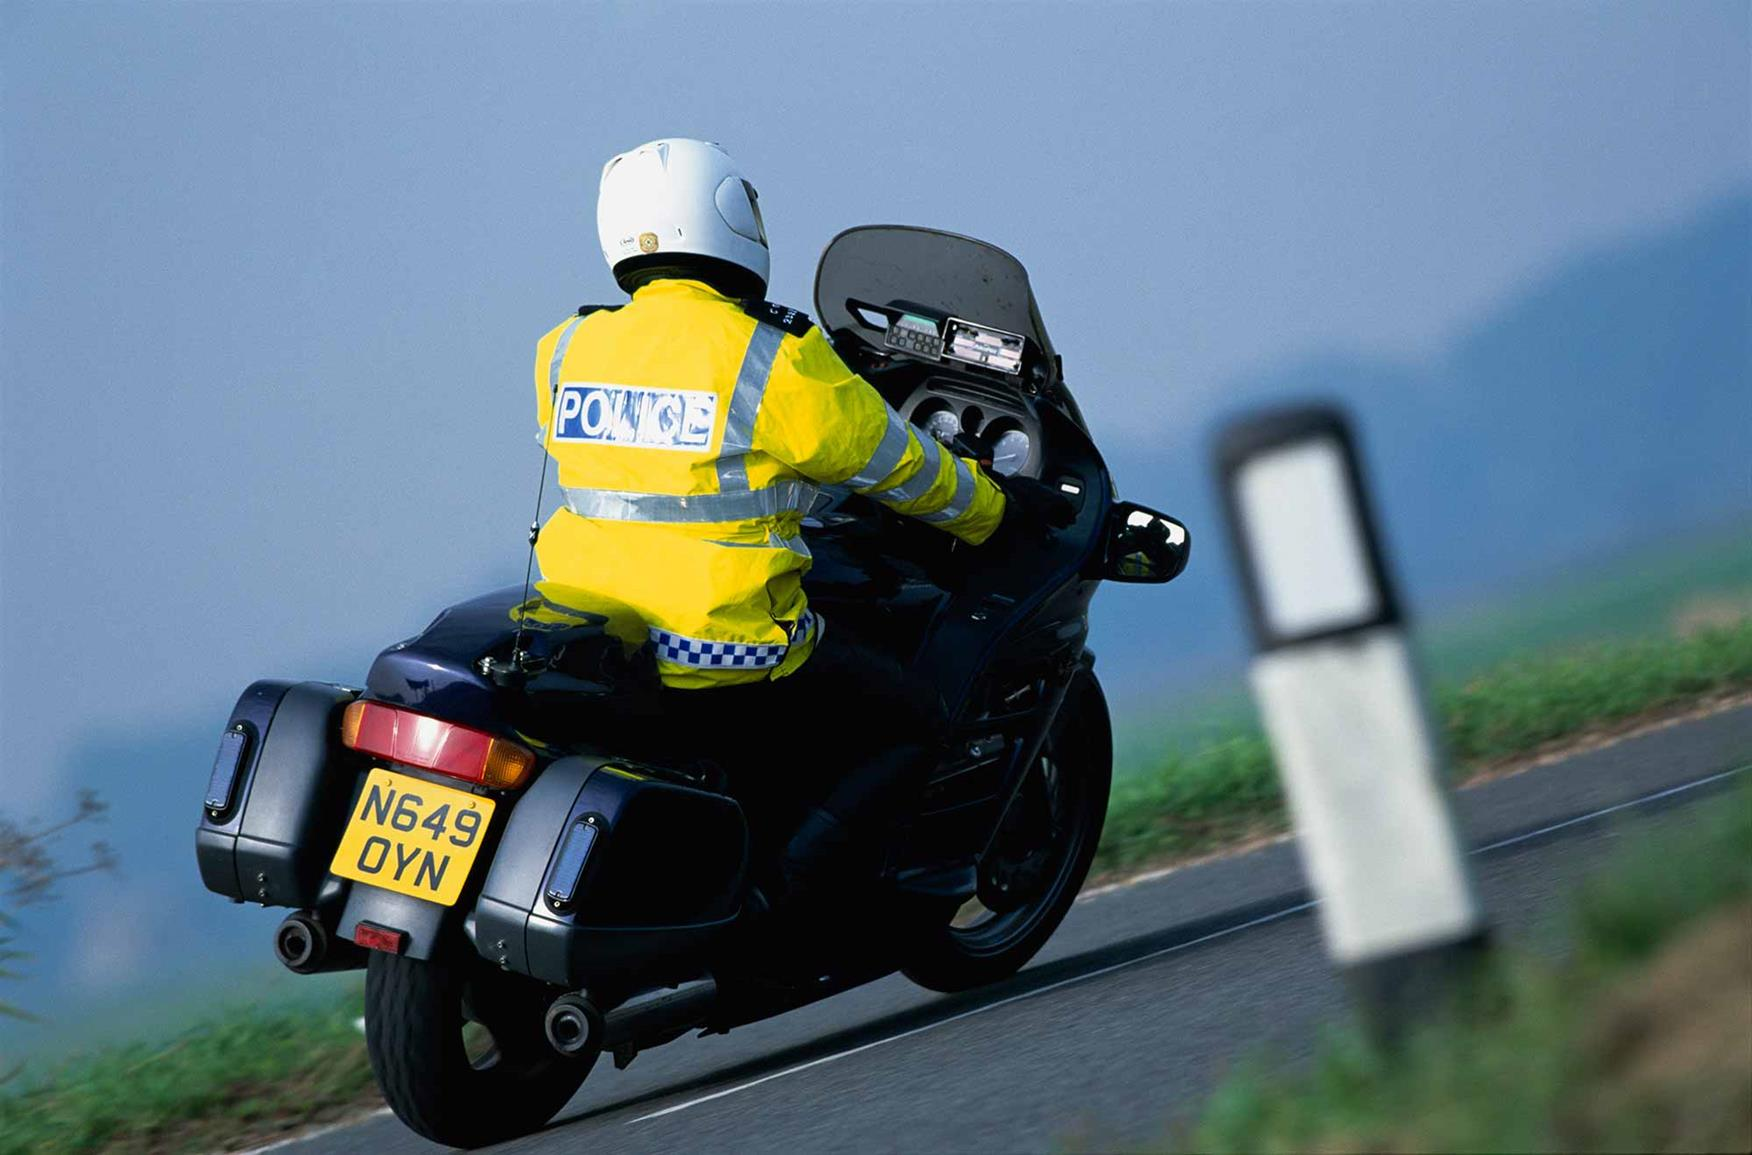 A police motorcyclist in action